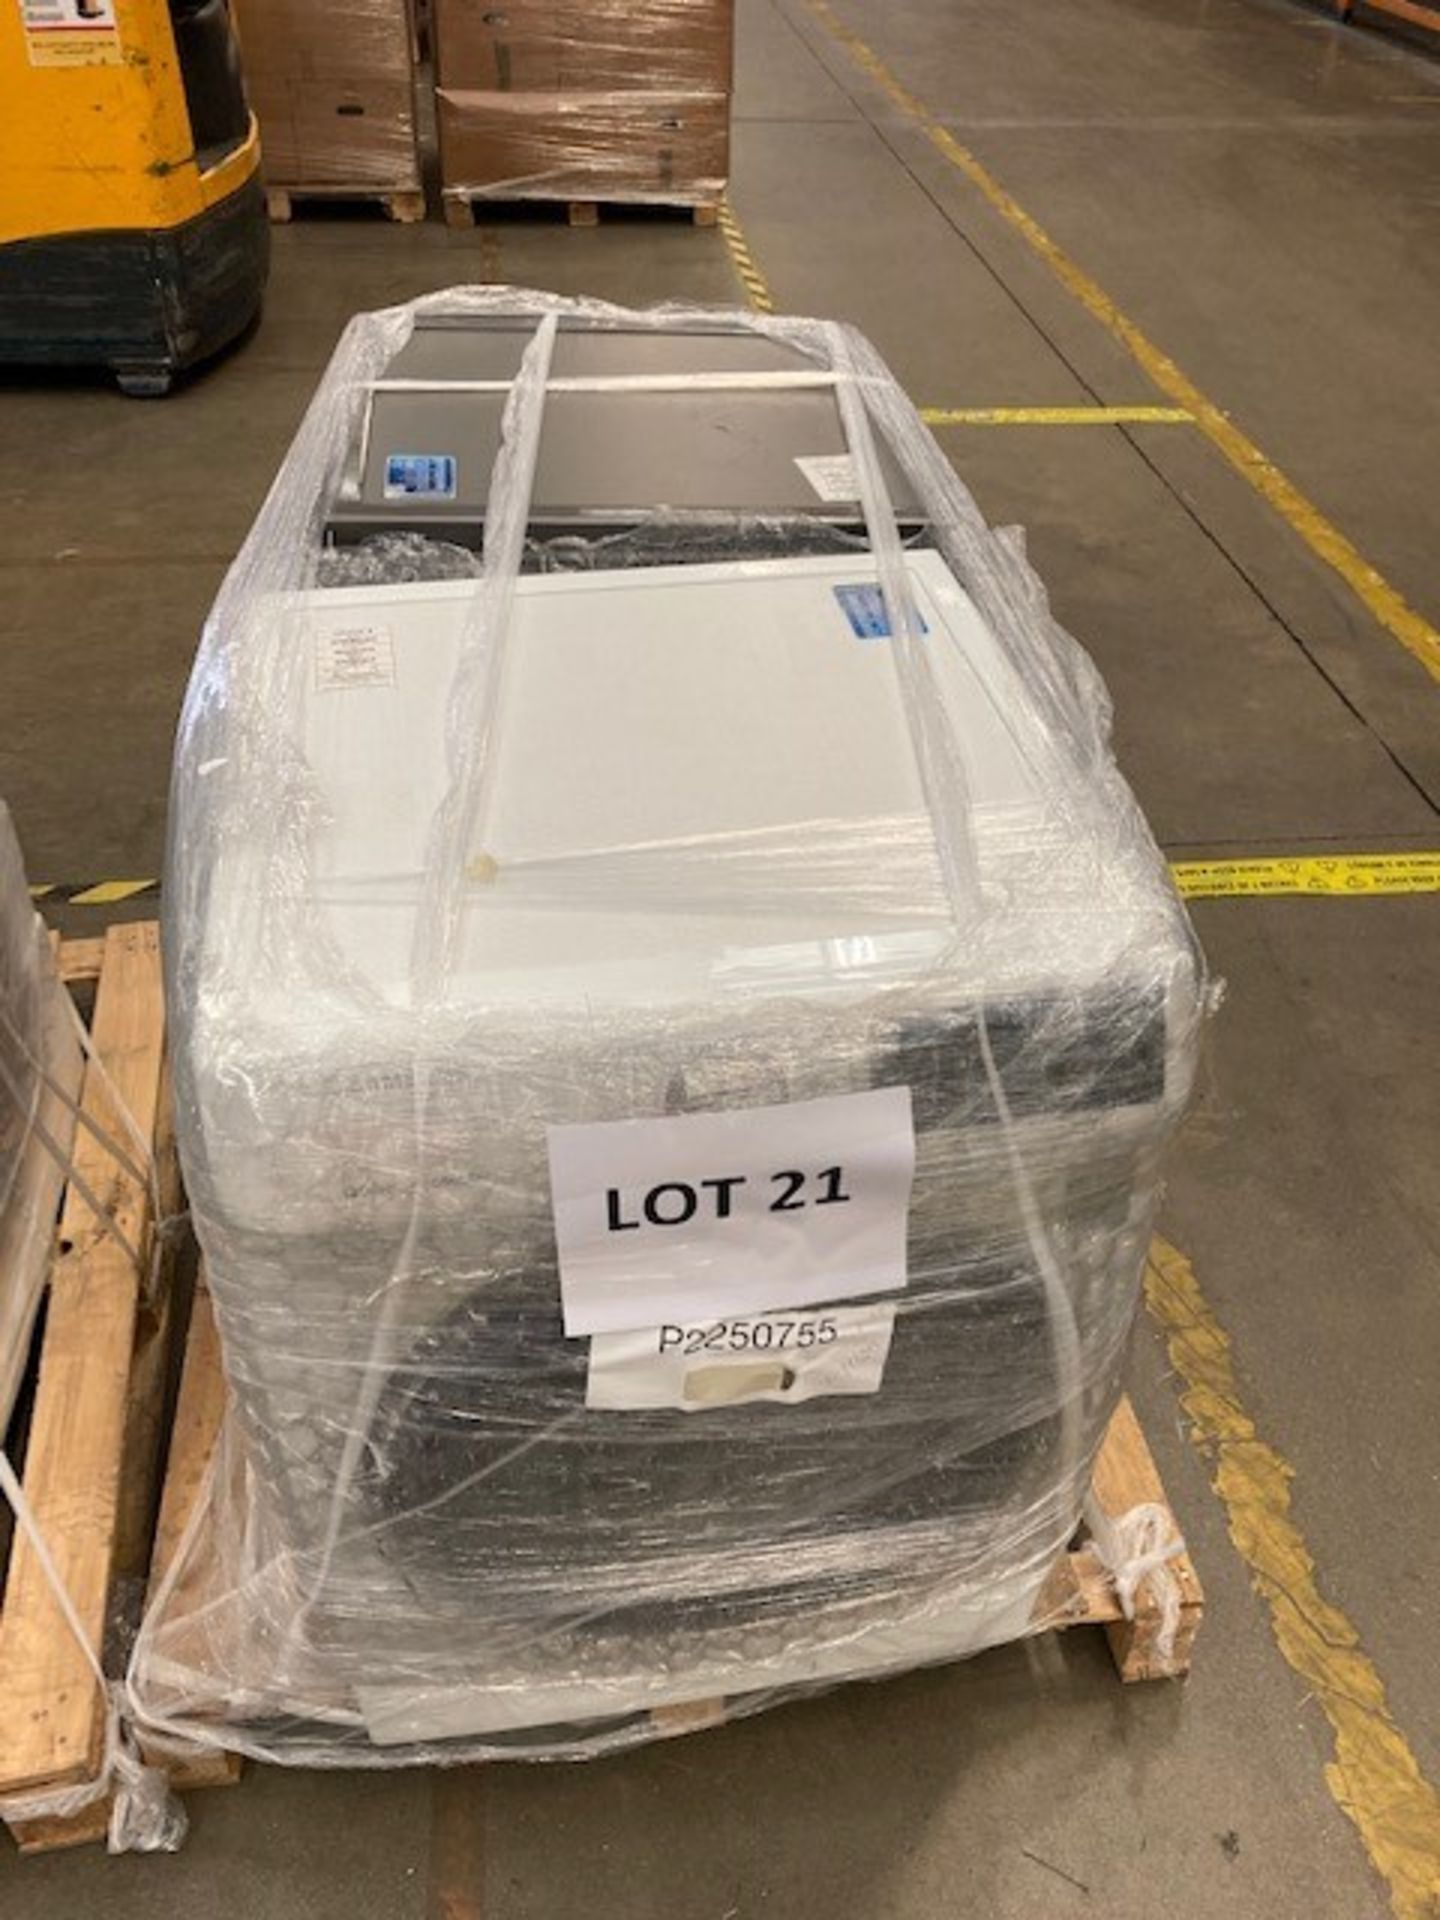 Pallet of 2 Samsung Premium Washing machines. Latest selling price £1,229.97* - Image 3 of 8